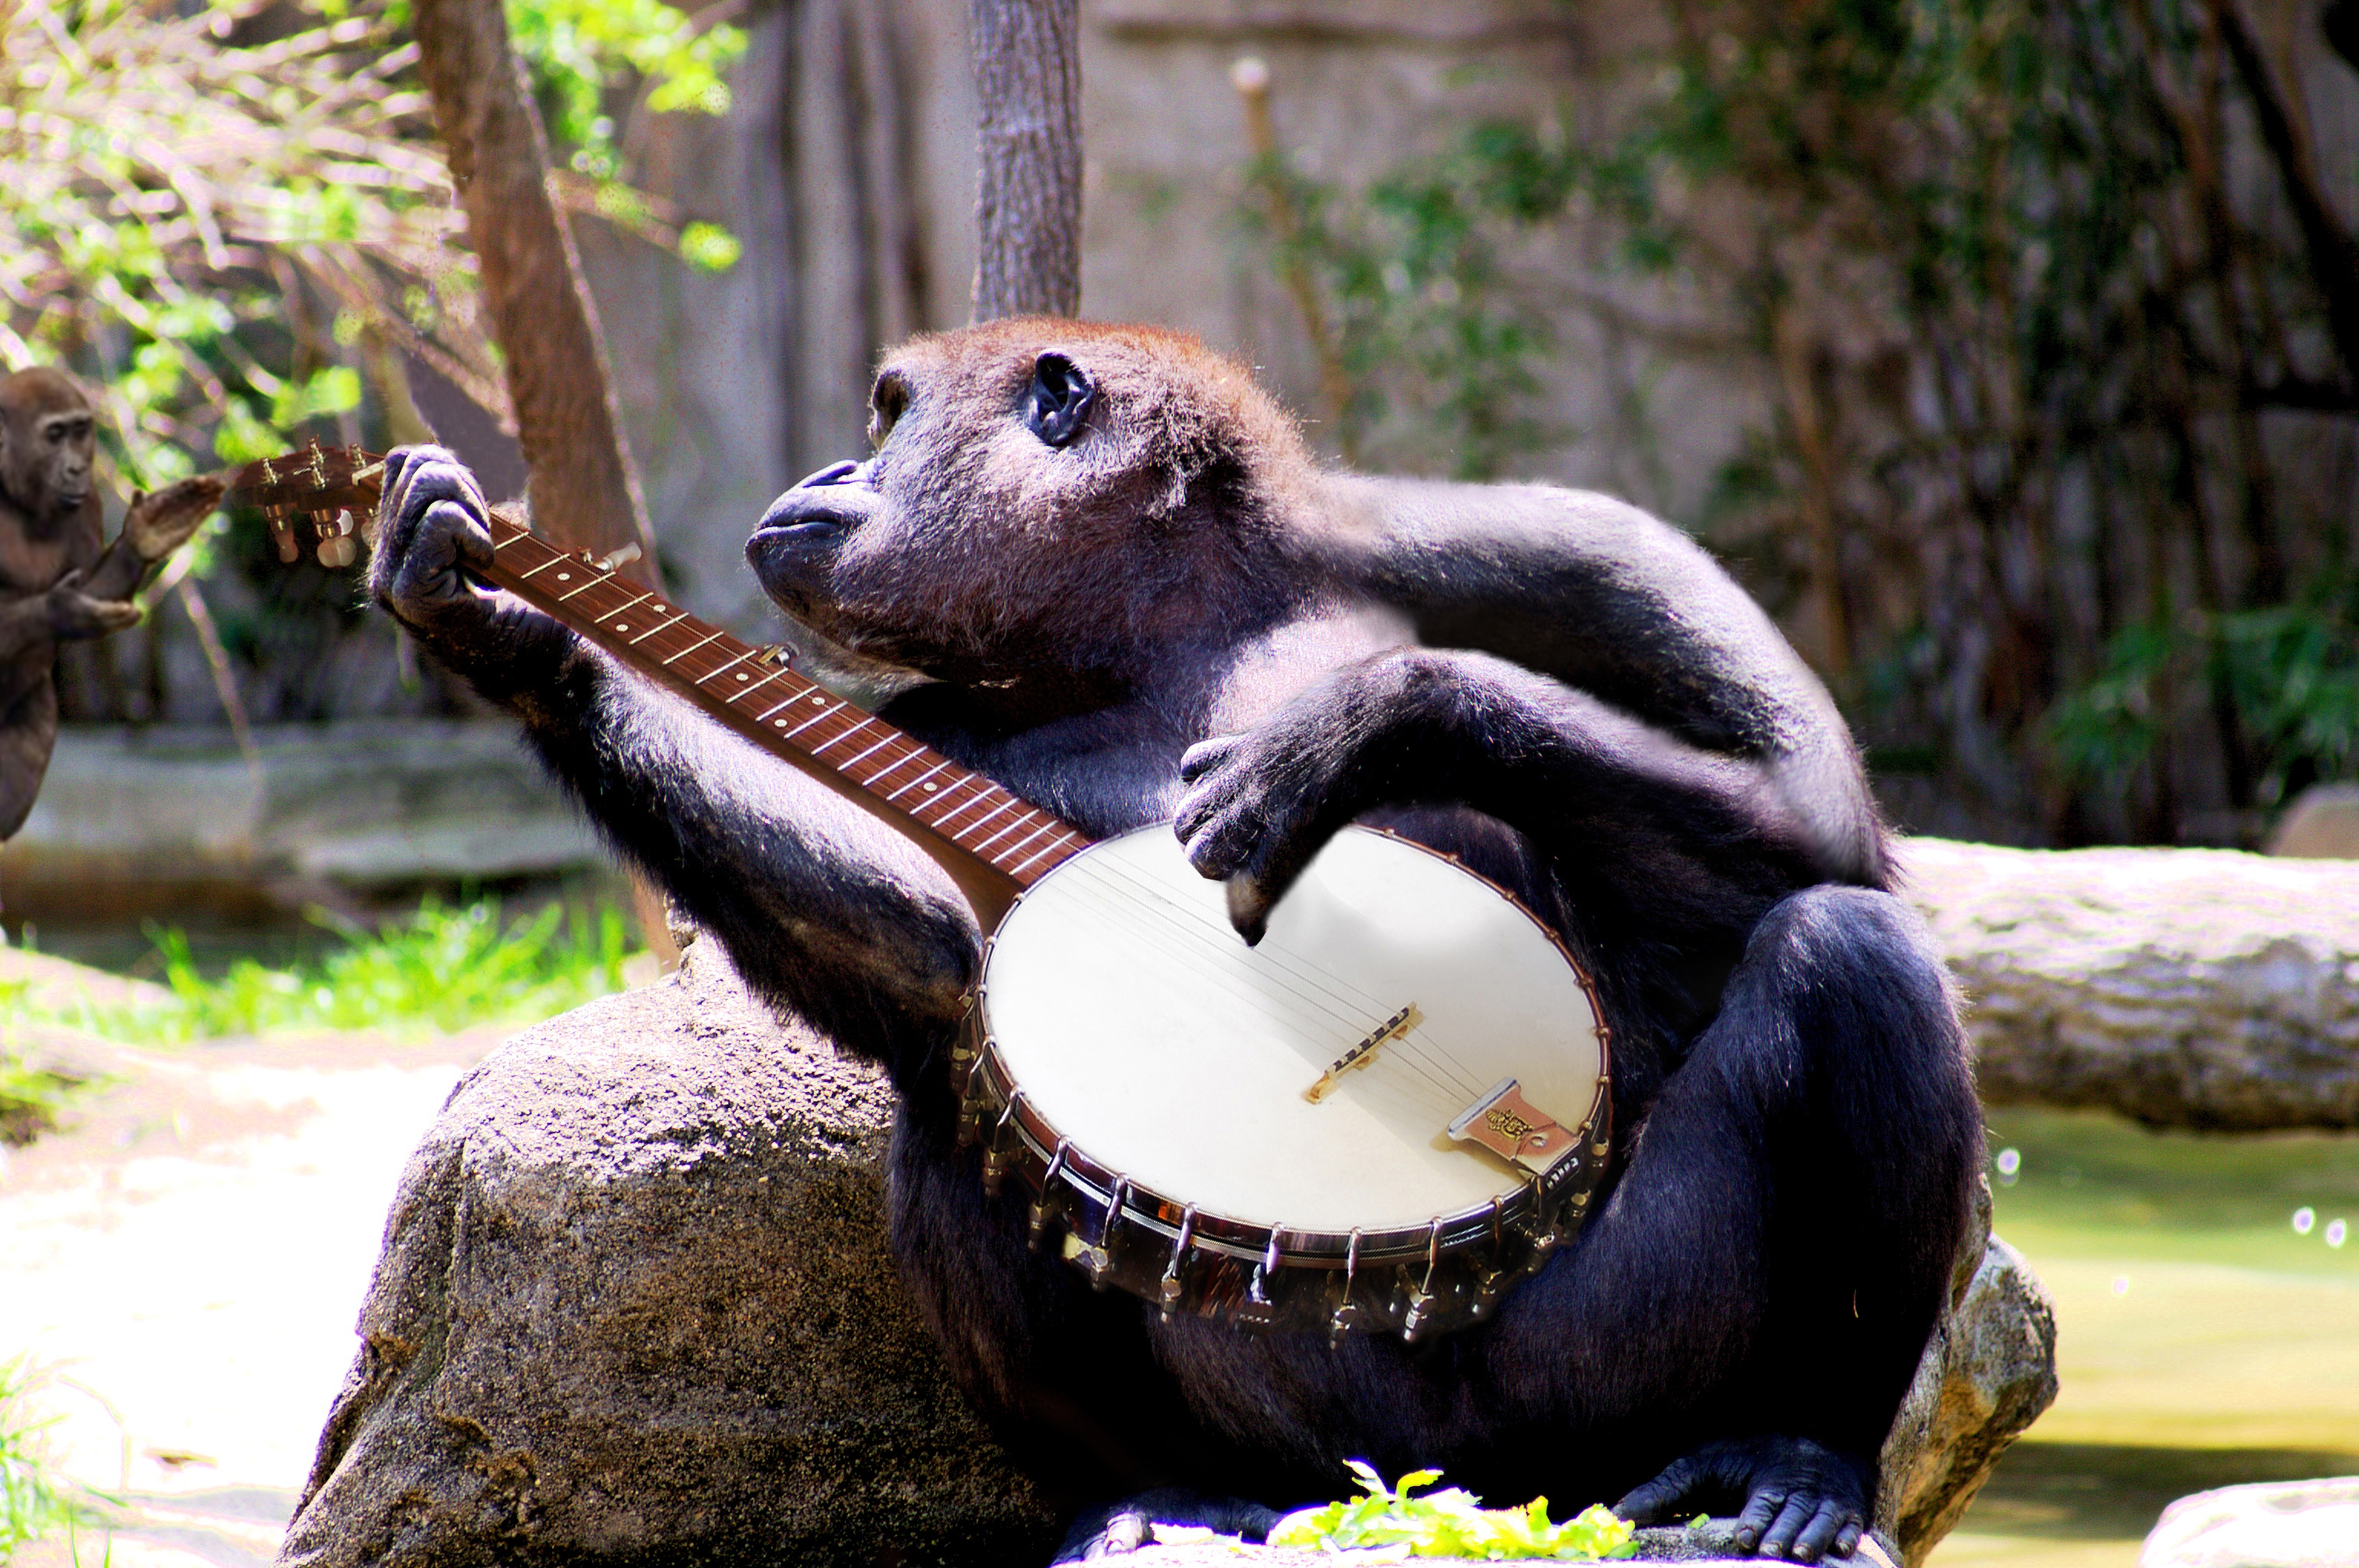 animals playing banjo - photo #10